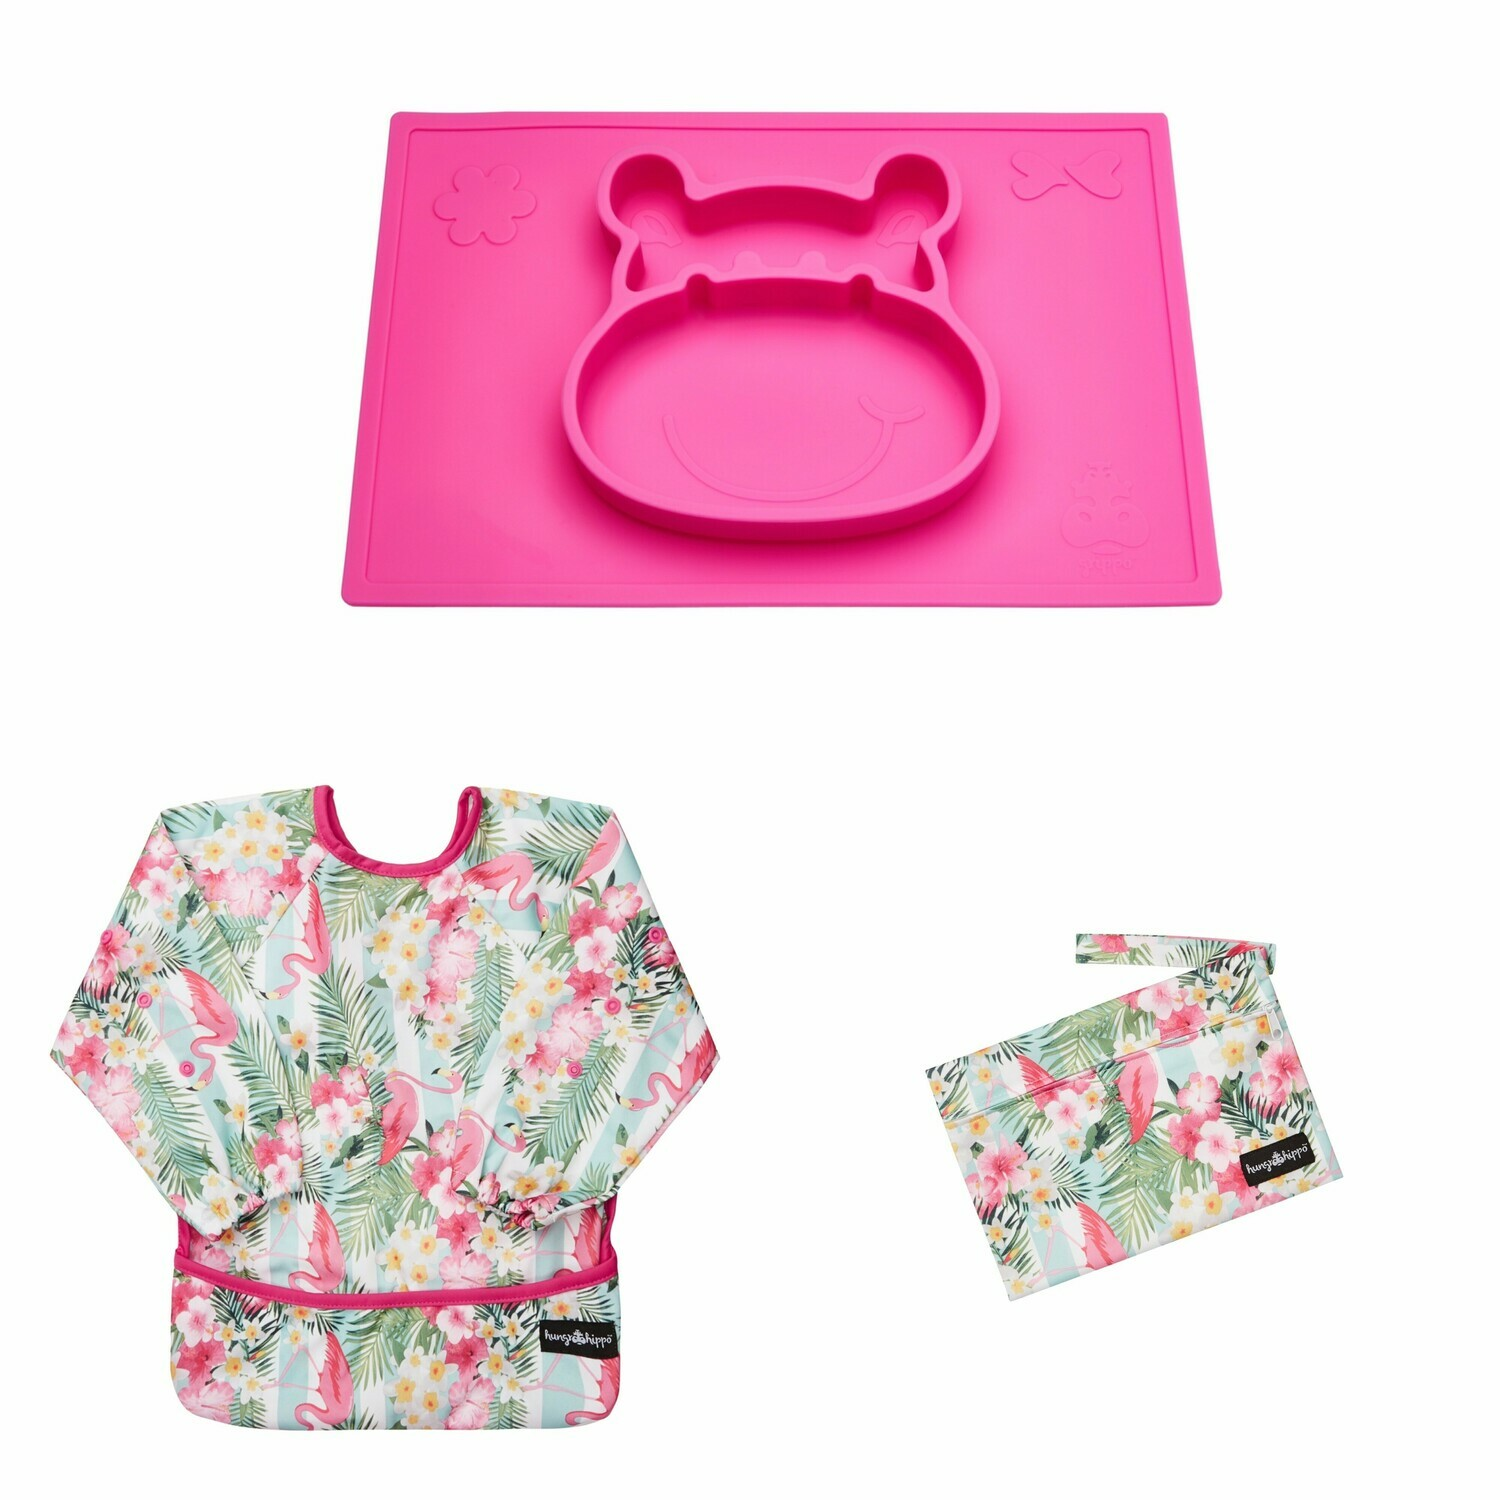 Weaning and Messy Play Bundle in Pink